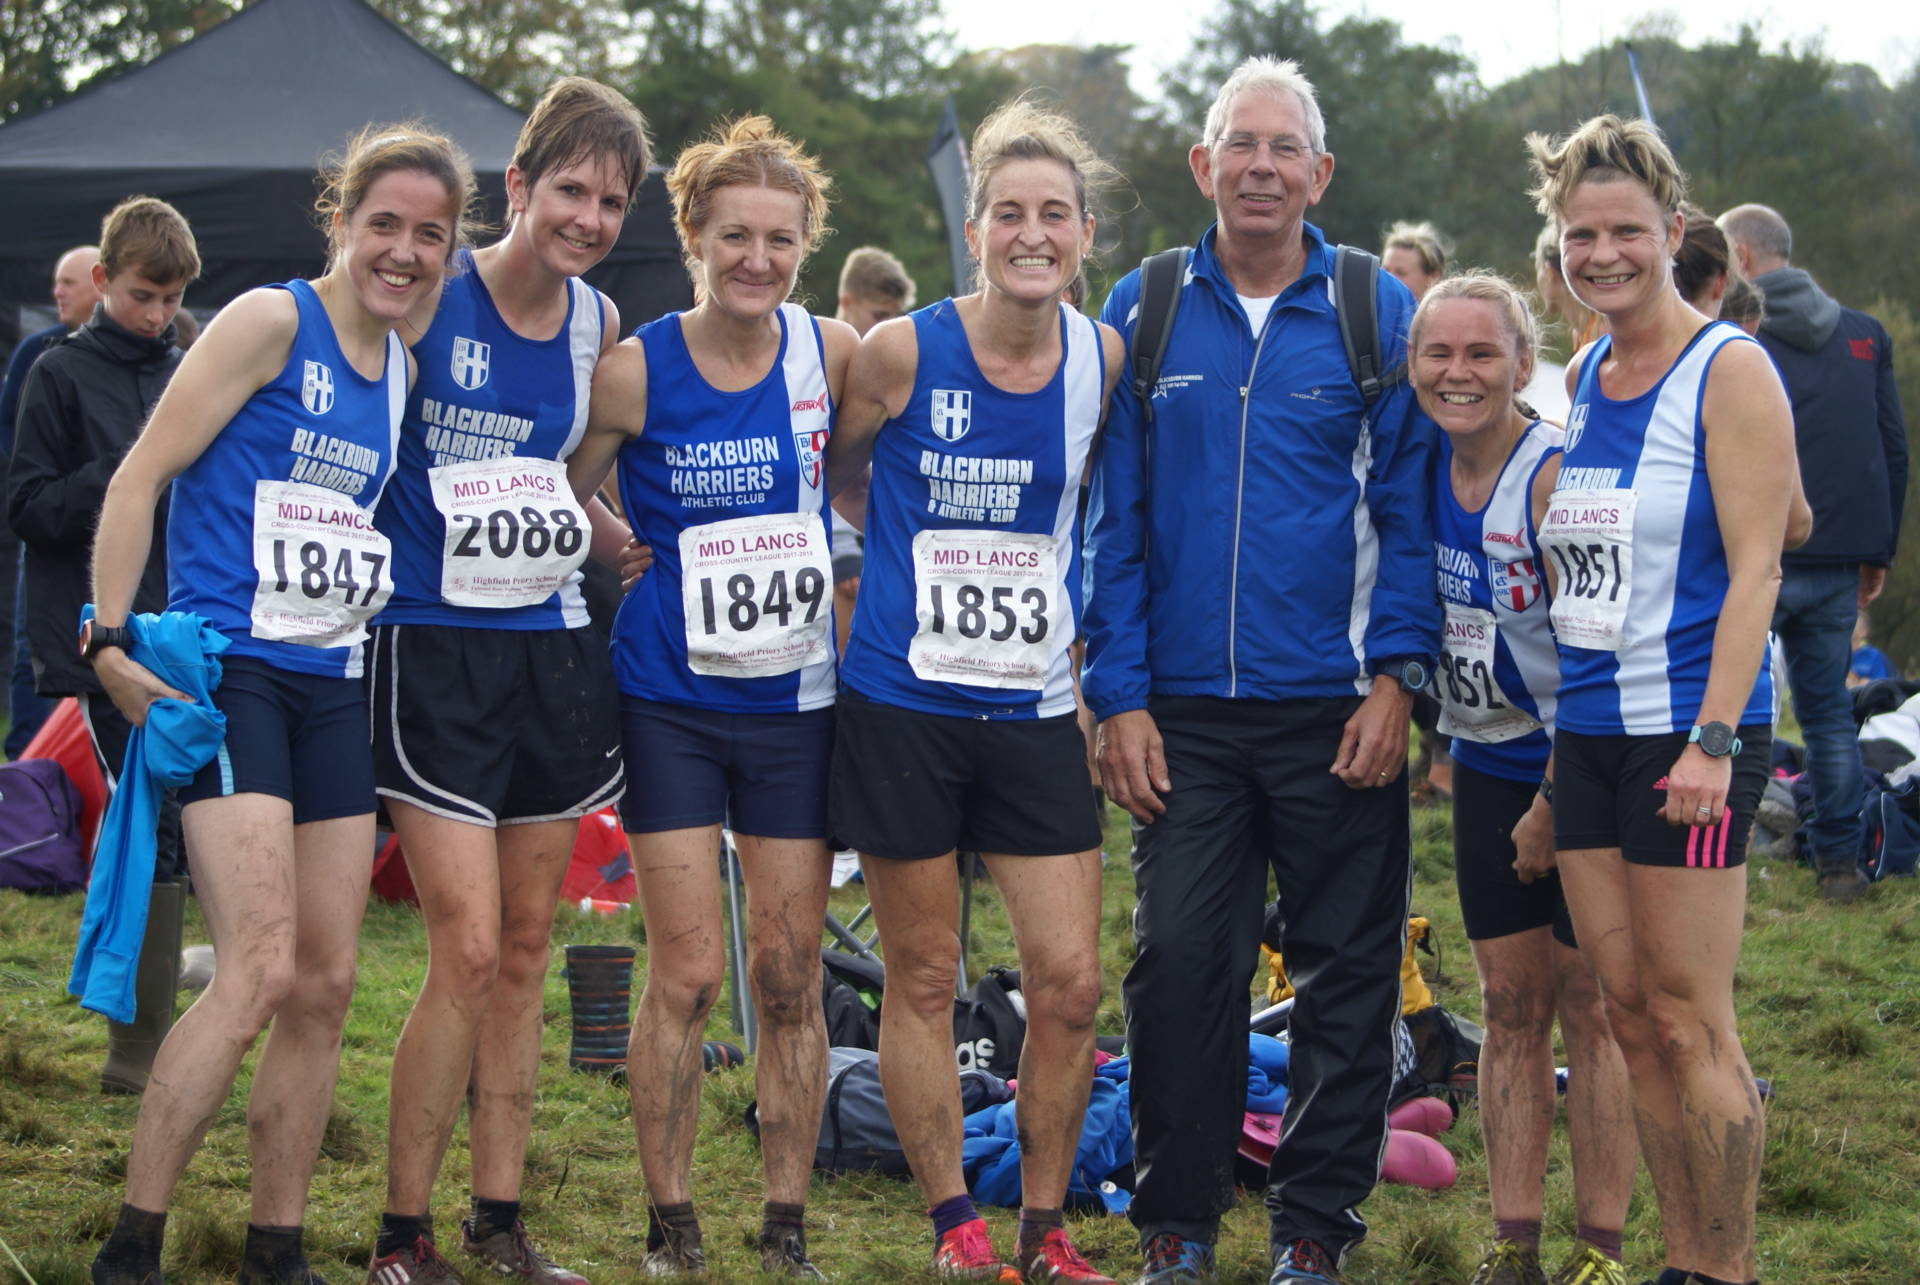 Great weekend for the Harriers with XC wins in Mid Lancs Red Rose & Leagues – Rob makes top 20 in Cardiff – Joe smashes Half-Marathon PB in Manchester – Pauline wins Cheshire 10k in new Course Record